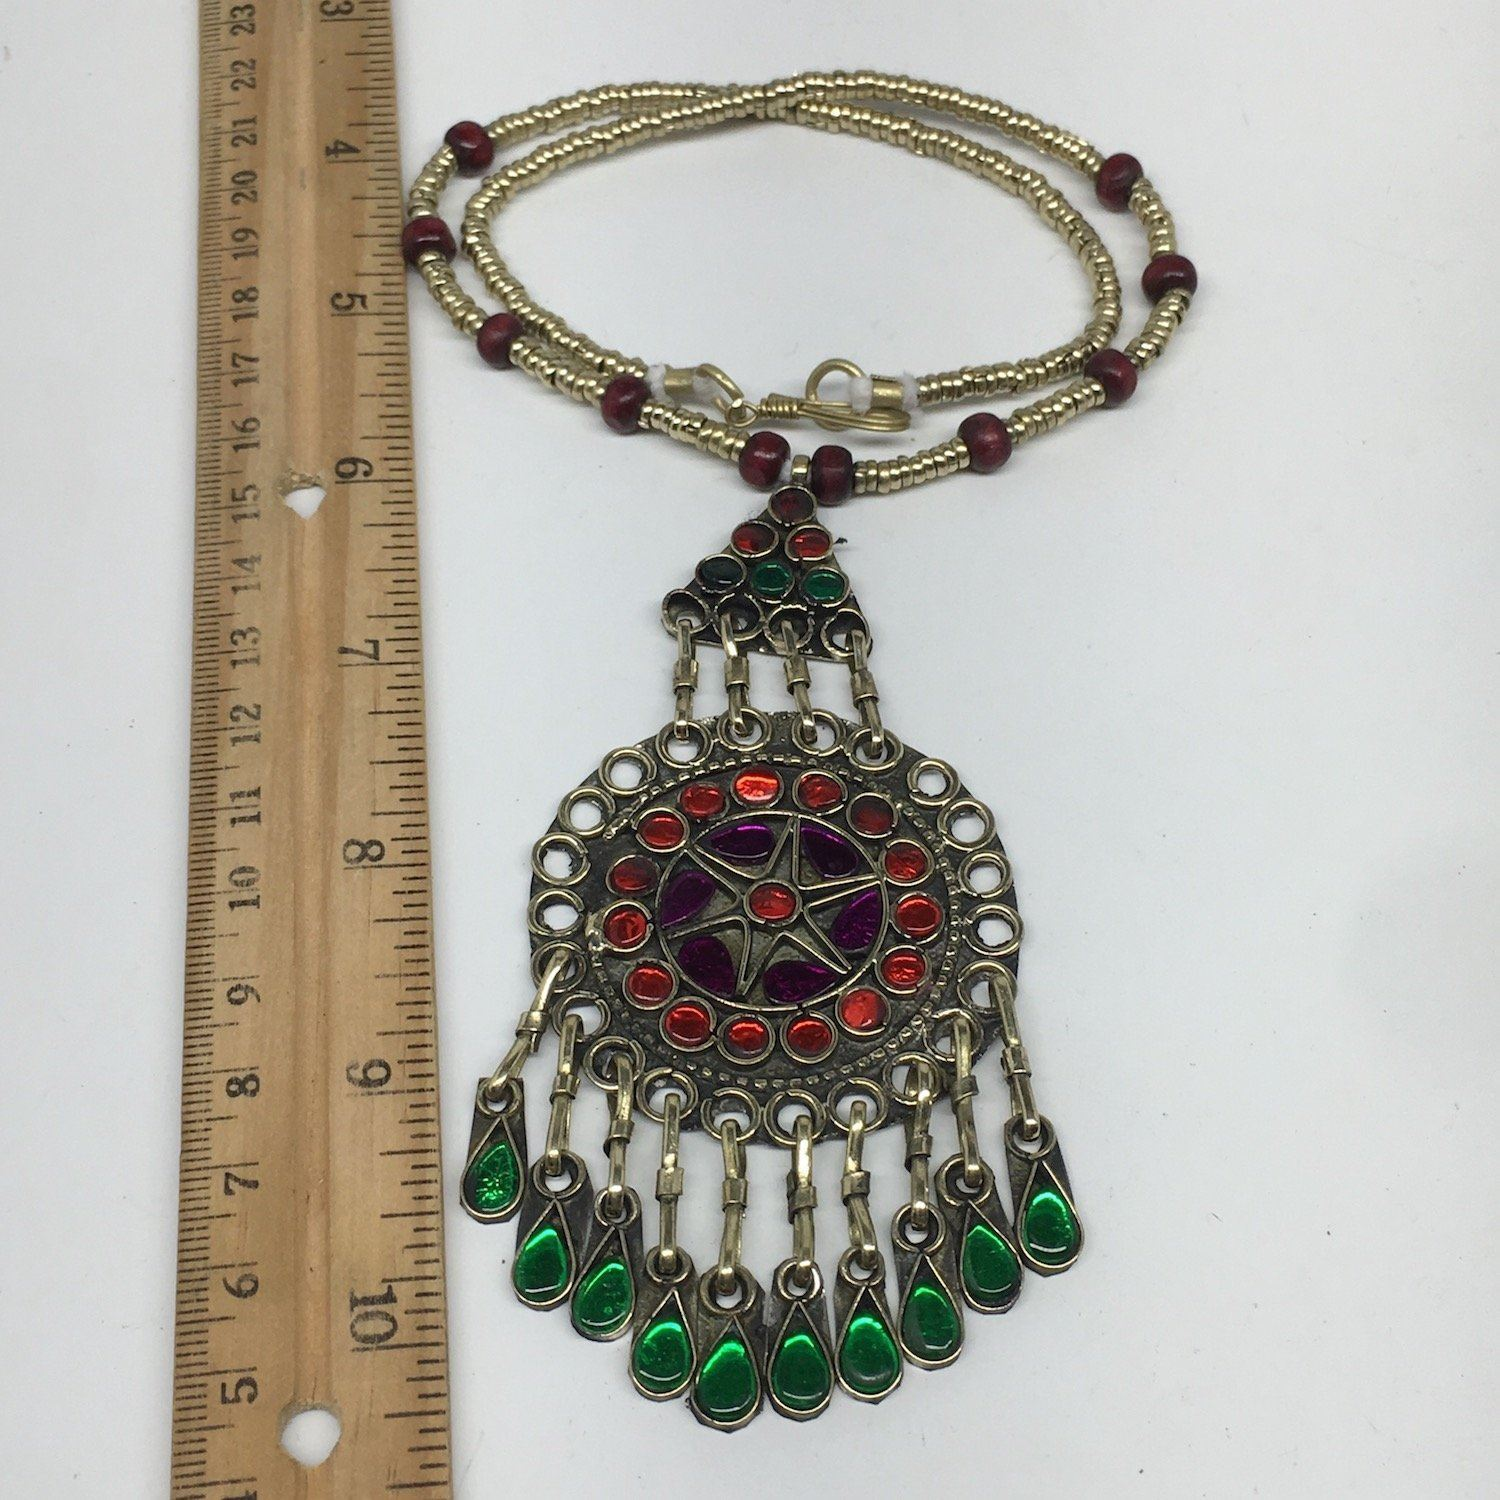 Kuchi Necklace Afghan Tribal Fashion Colorful Glass ATS Necktie Necklace, KN420